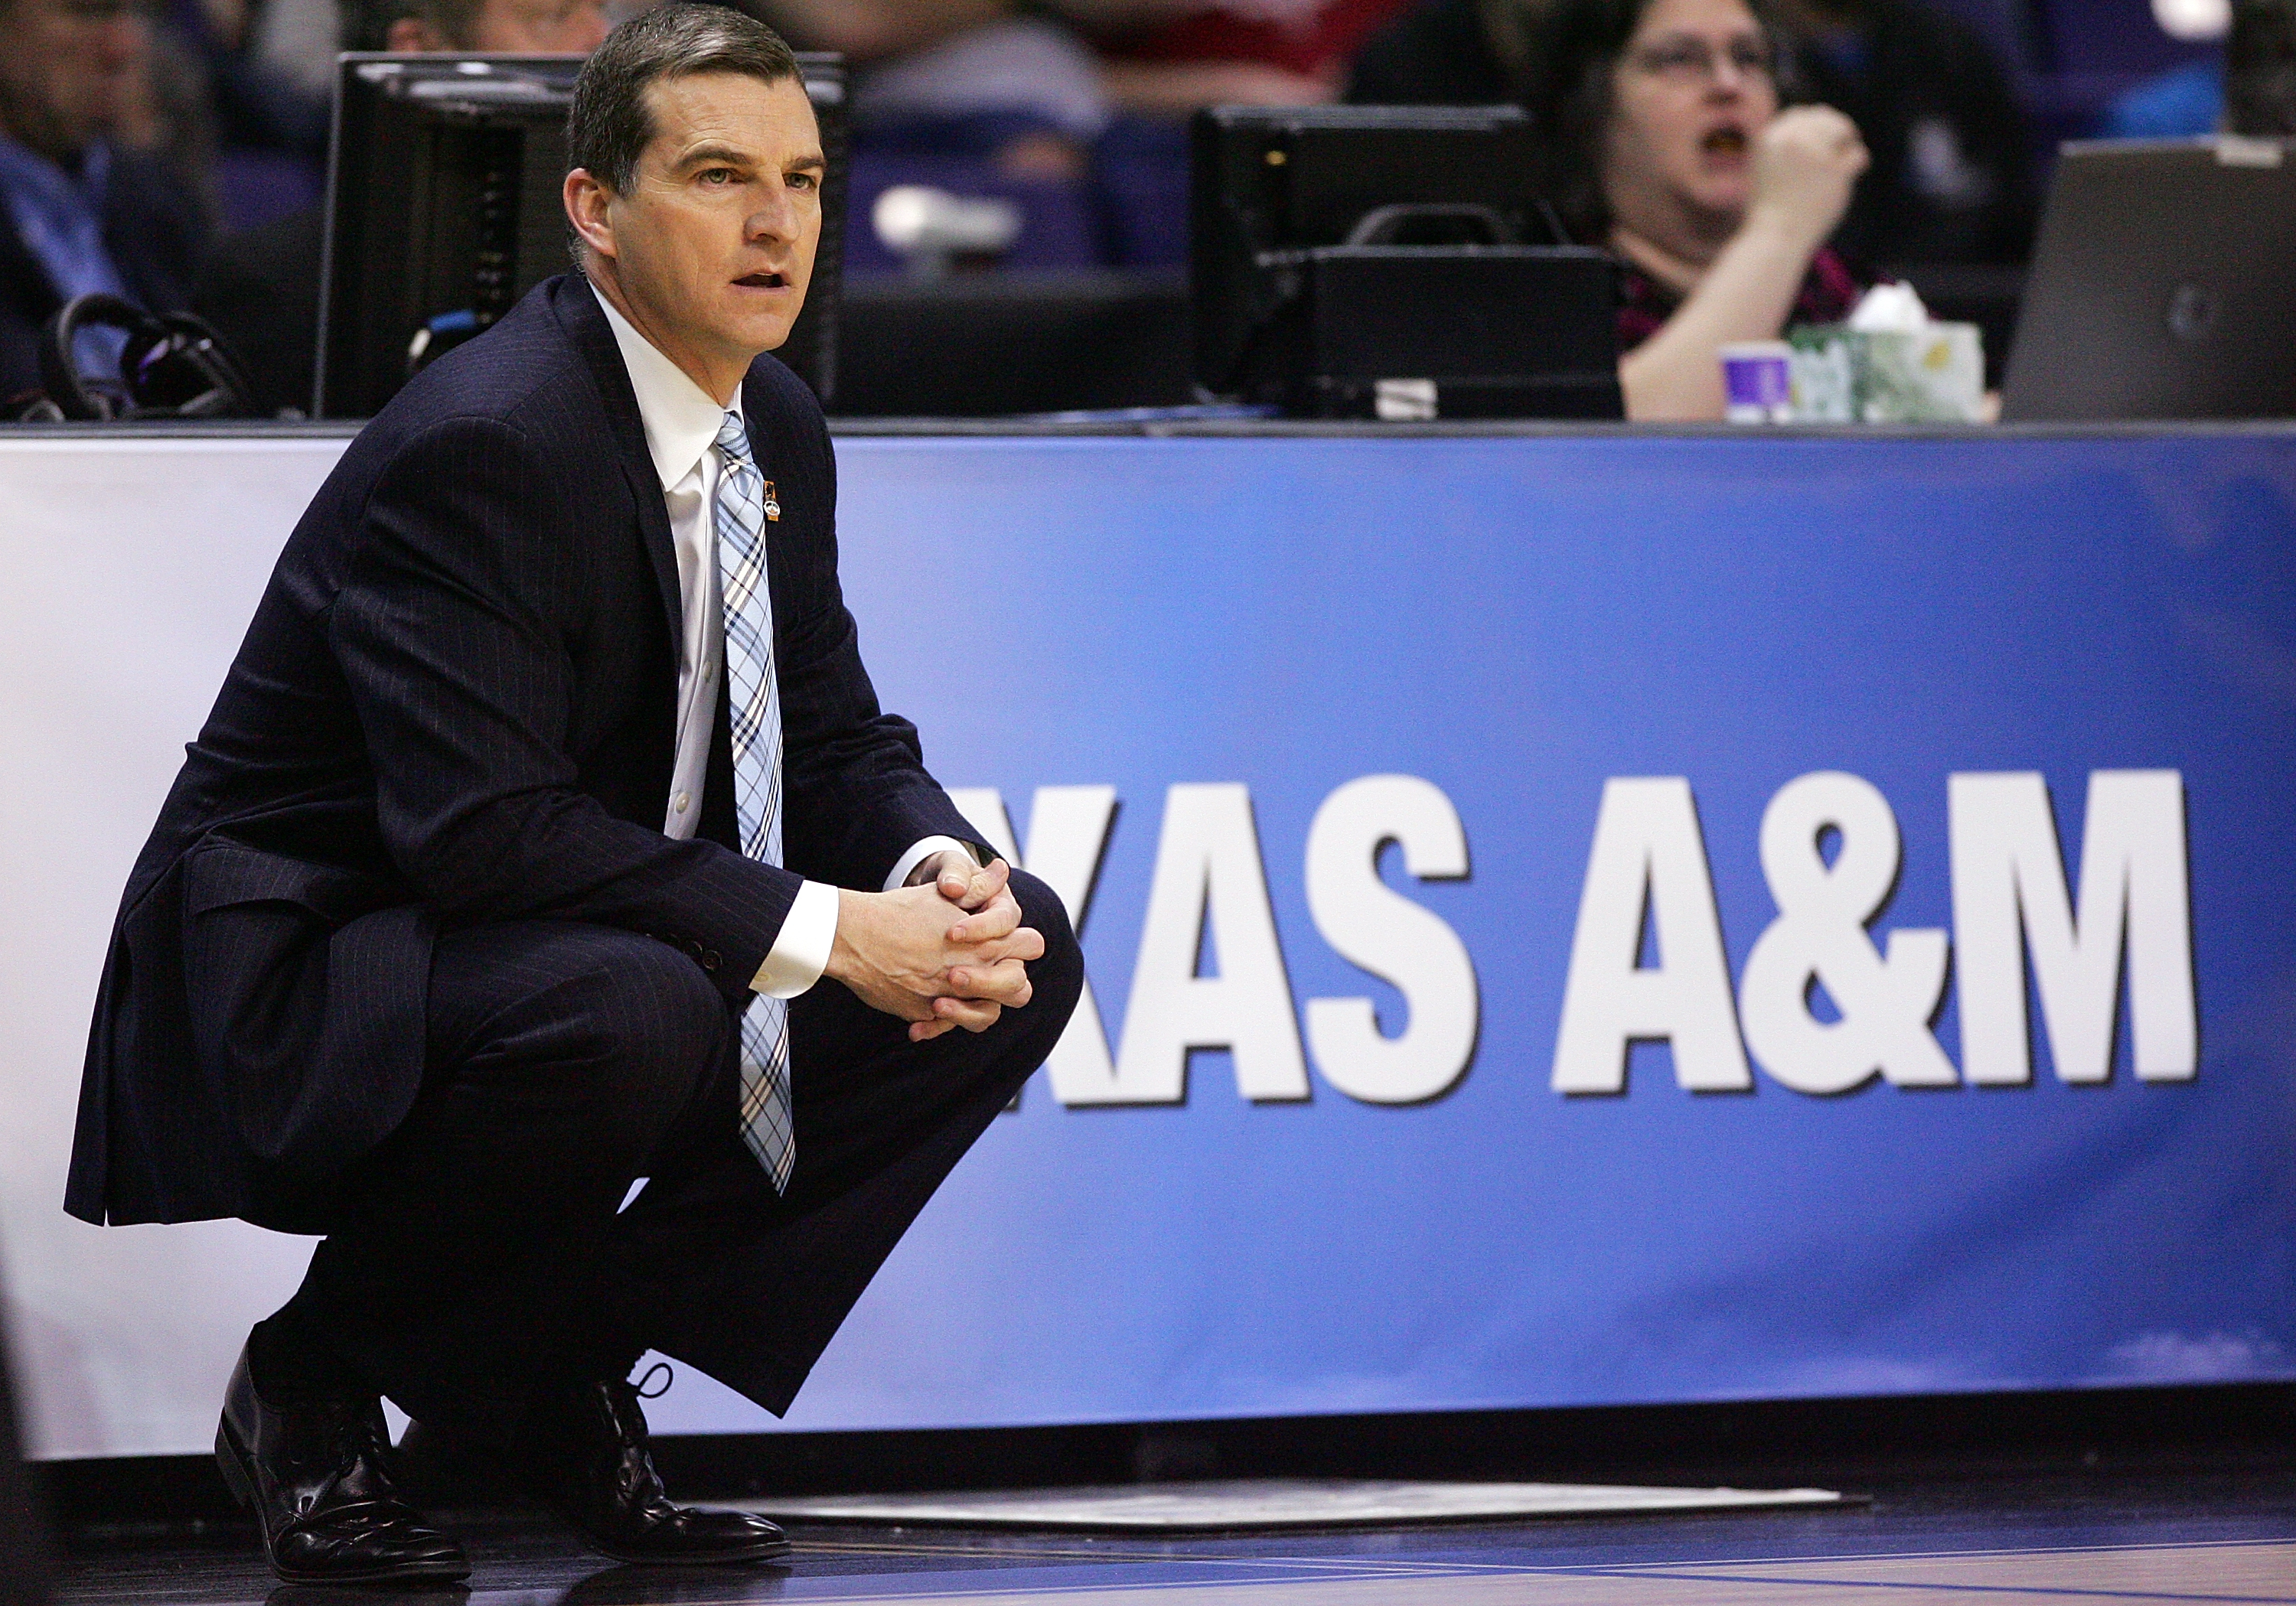 A&M matches the intensity of their coach, Mark Turgeon.